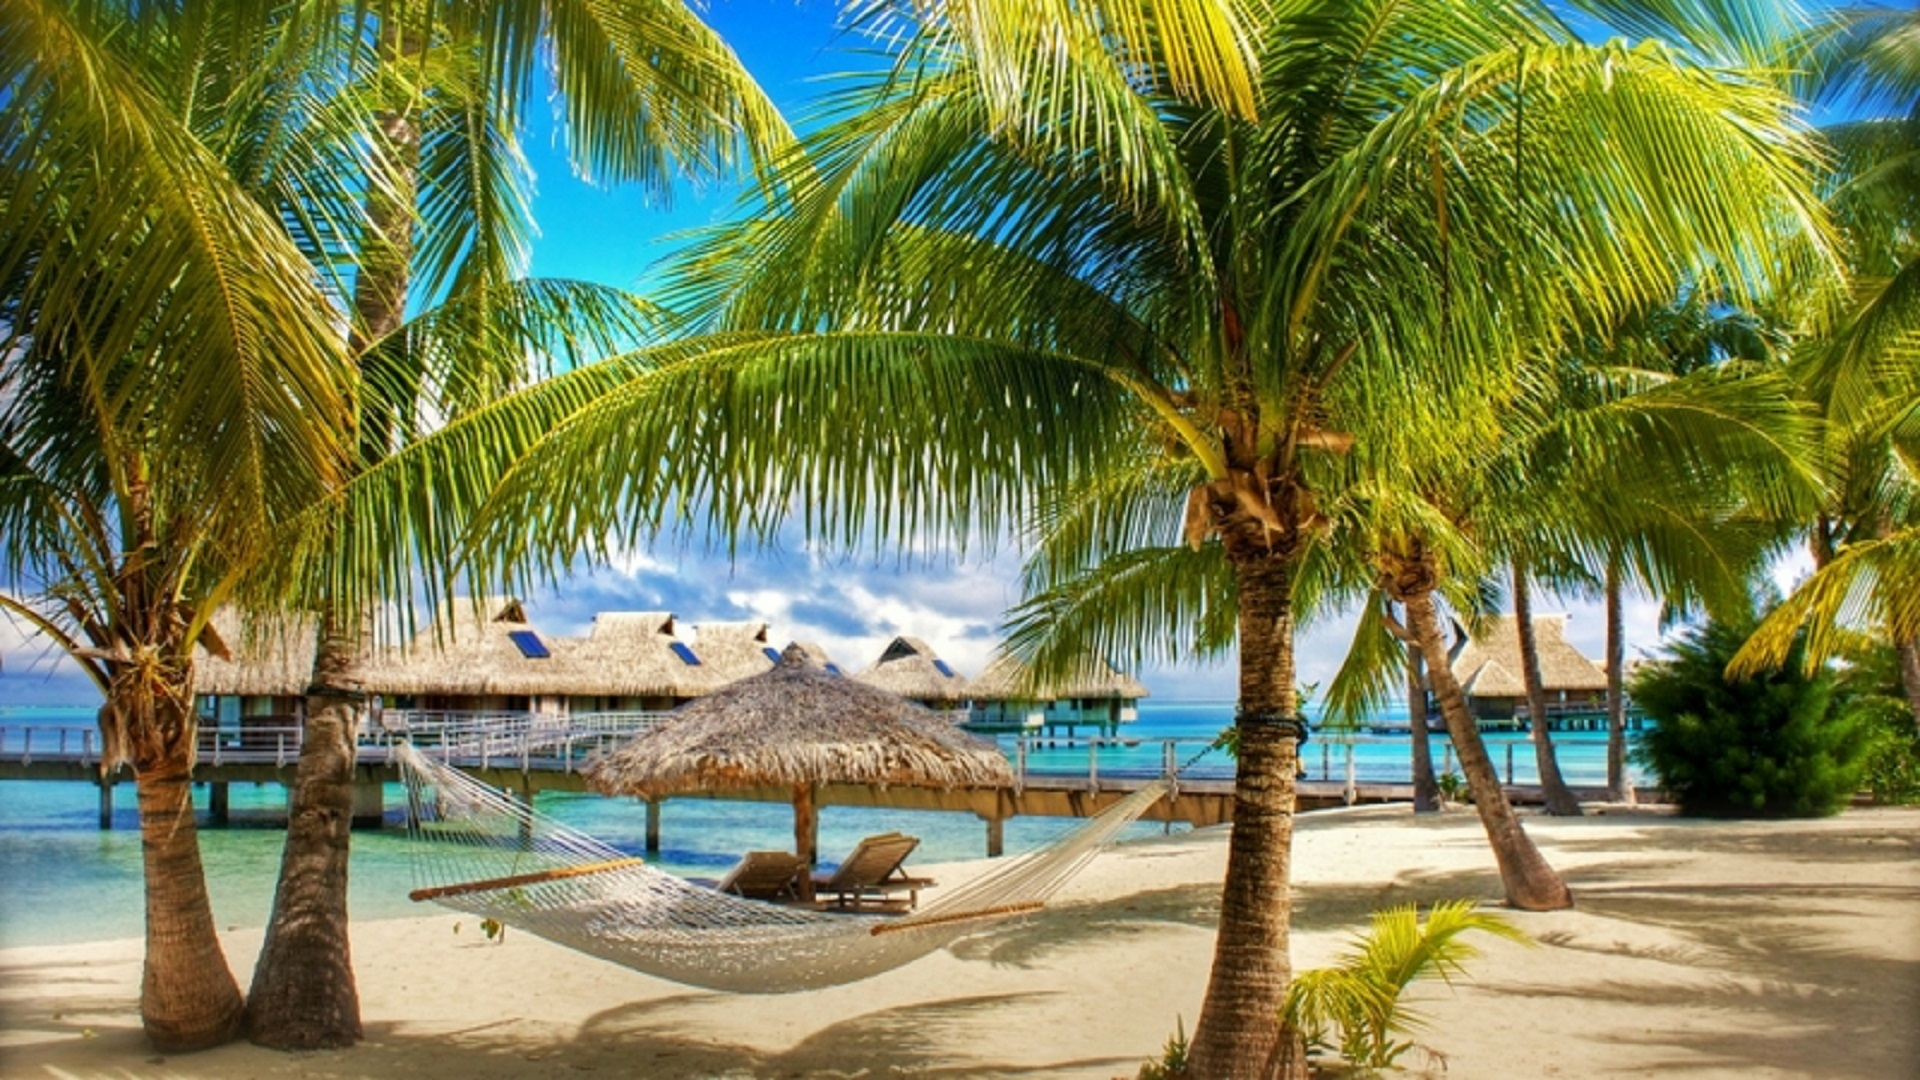 Hd Tropical Island Beach Paradise Wallpapers And Backgrounds: Beautiful-best-summer-scene-hd-free-wallpapers-for